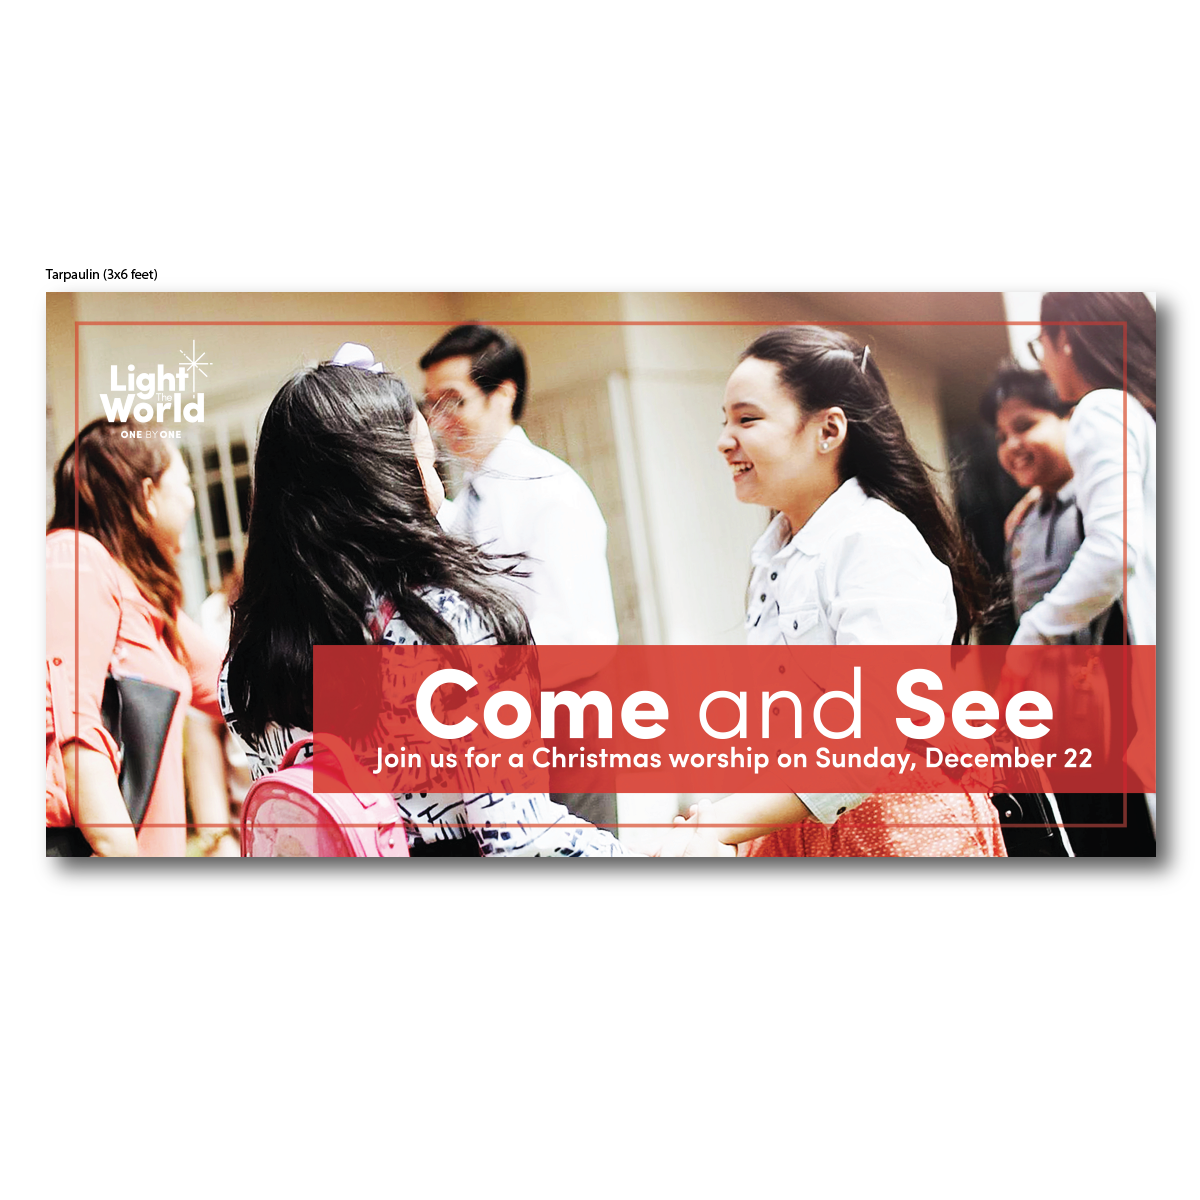 Tarpaulin for Come and See